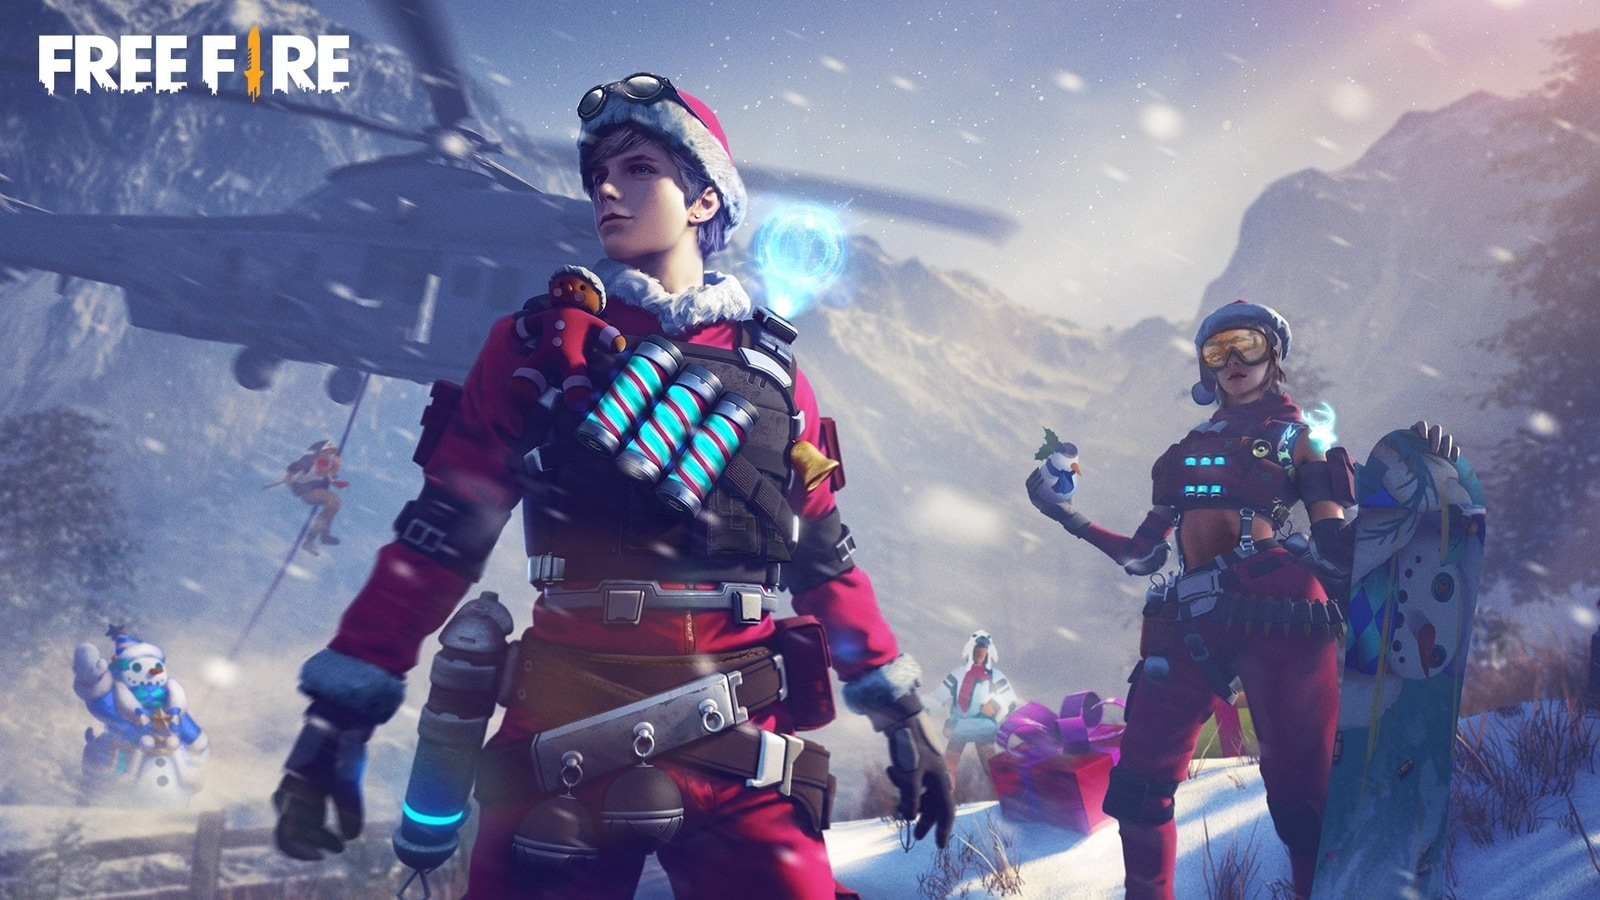 Garena Free Fire Redeem Codes for October 17: Check list of Free Fire codes - HT Tech